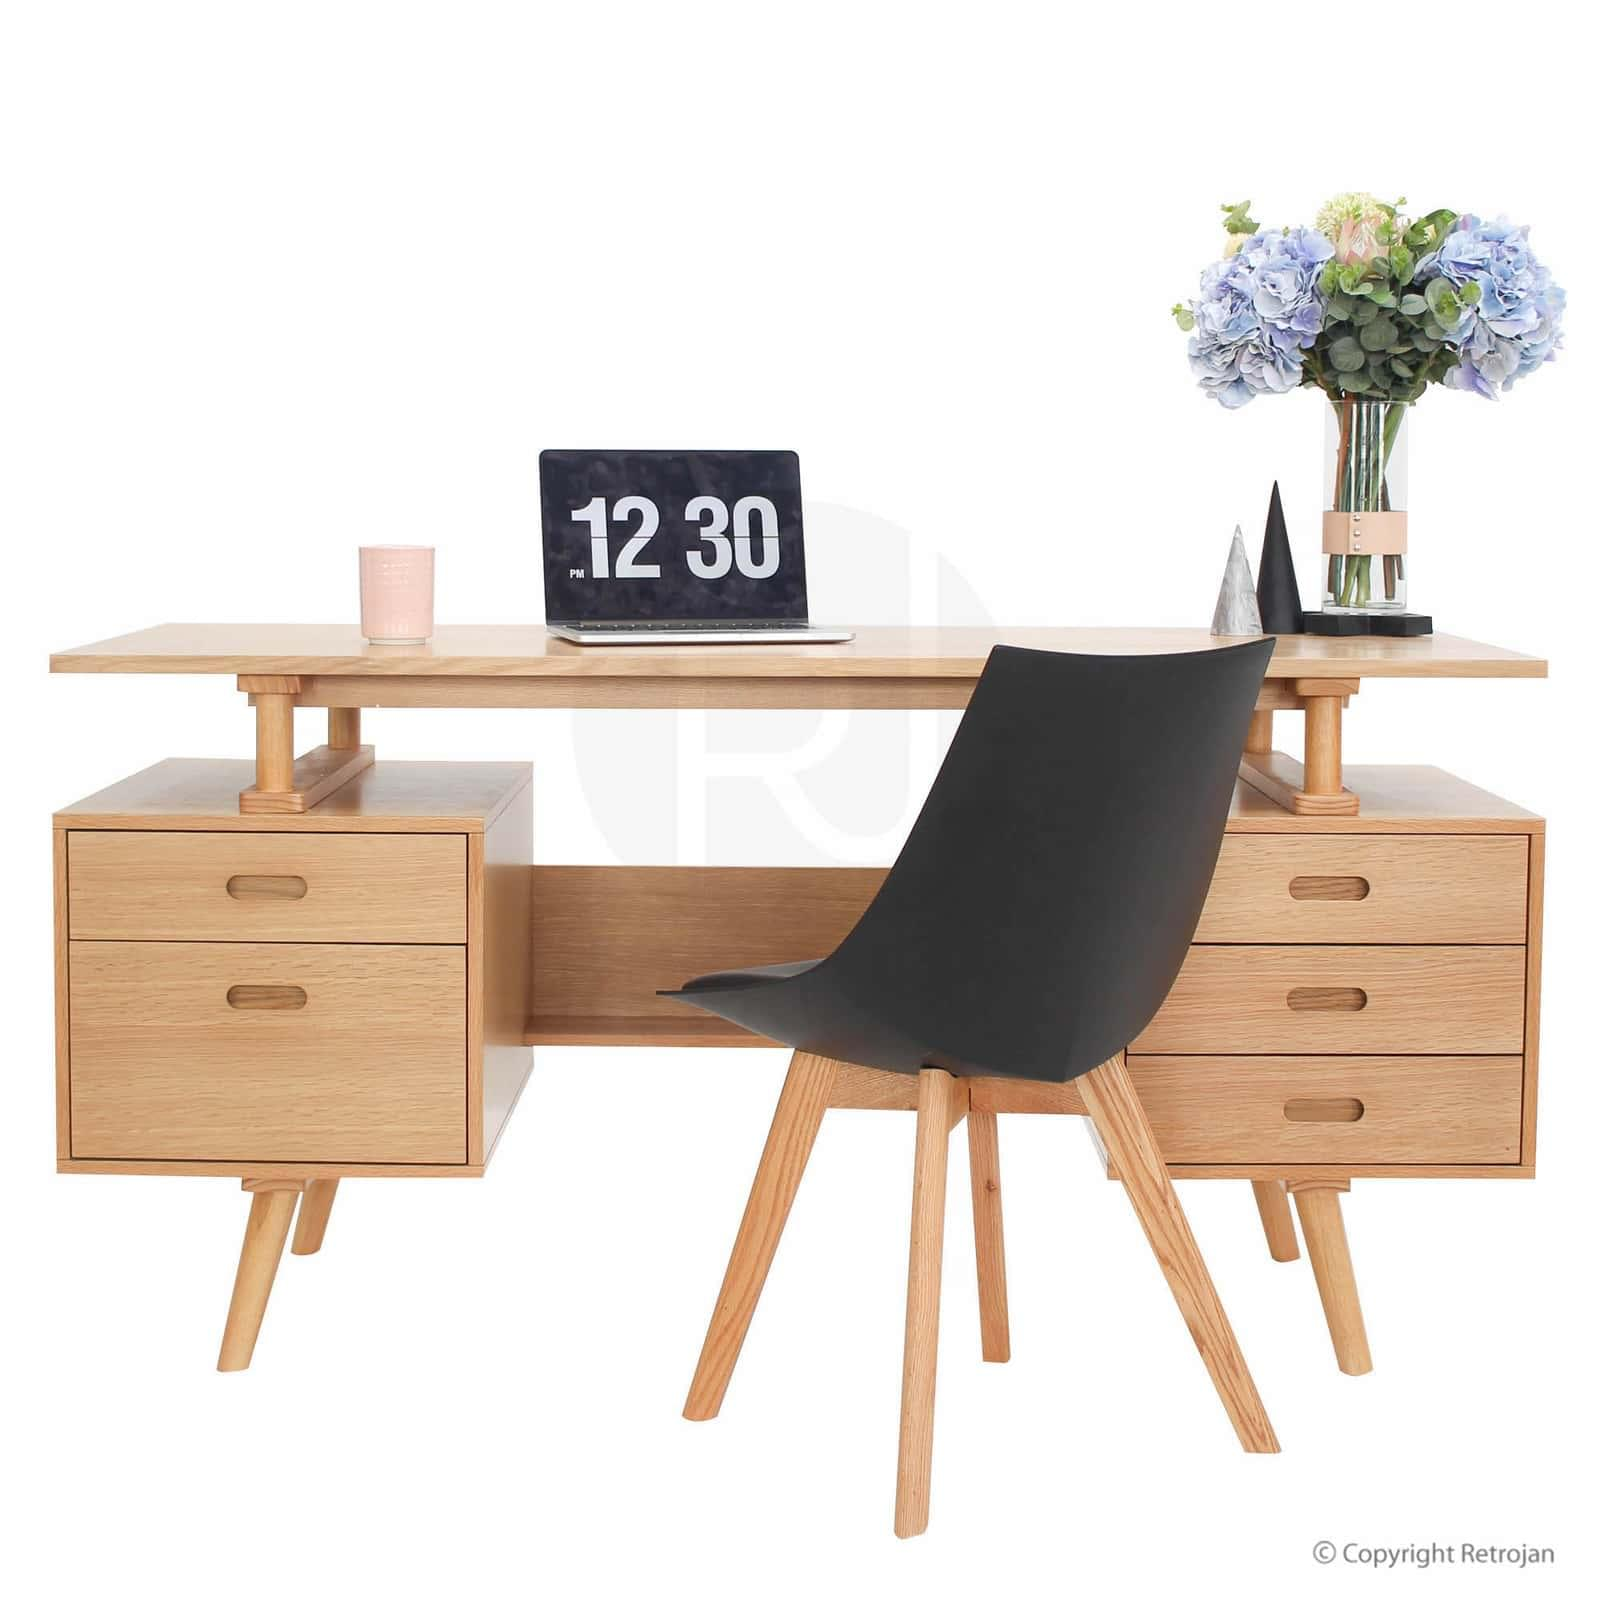 [Package] Haakon Scandinavian Style Bookshelf and Josephine Desk in Oak